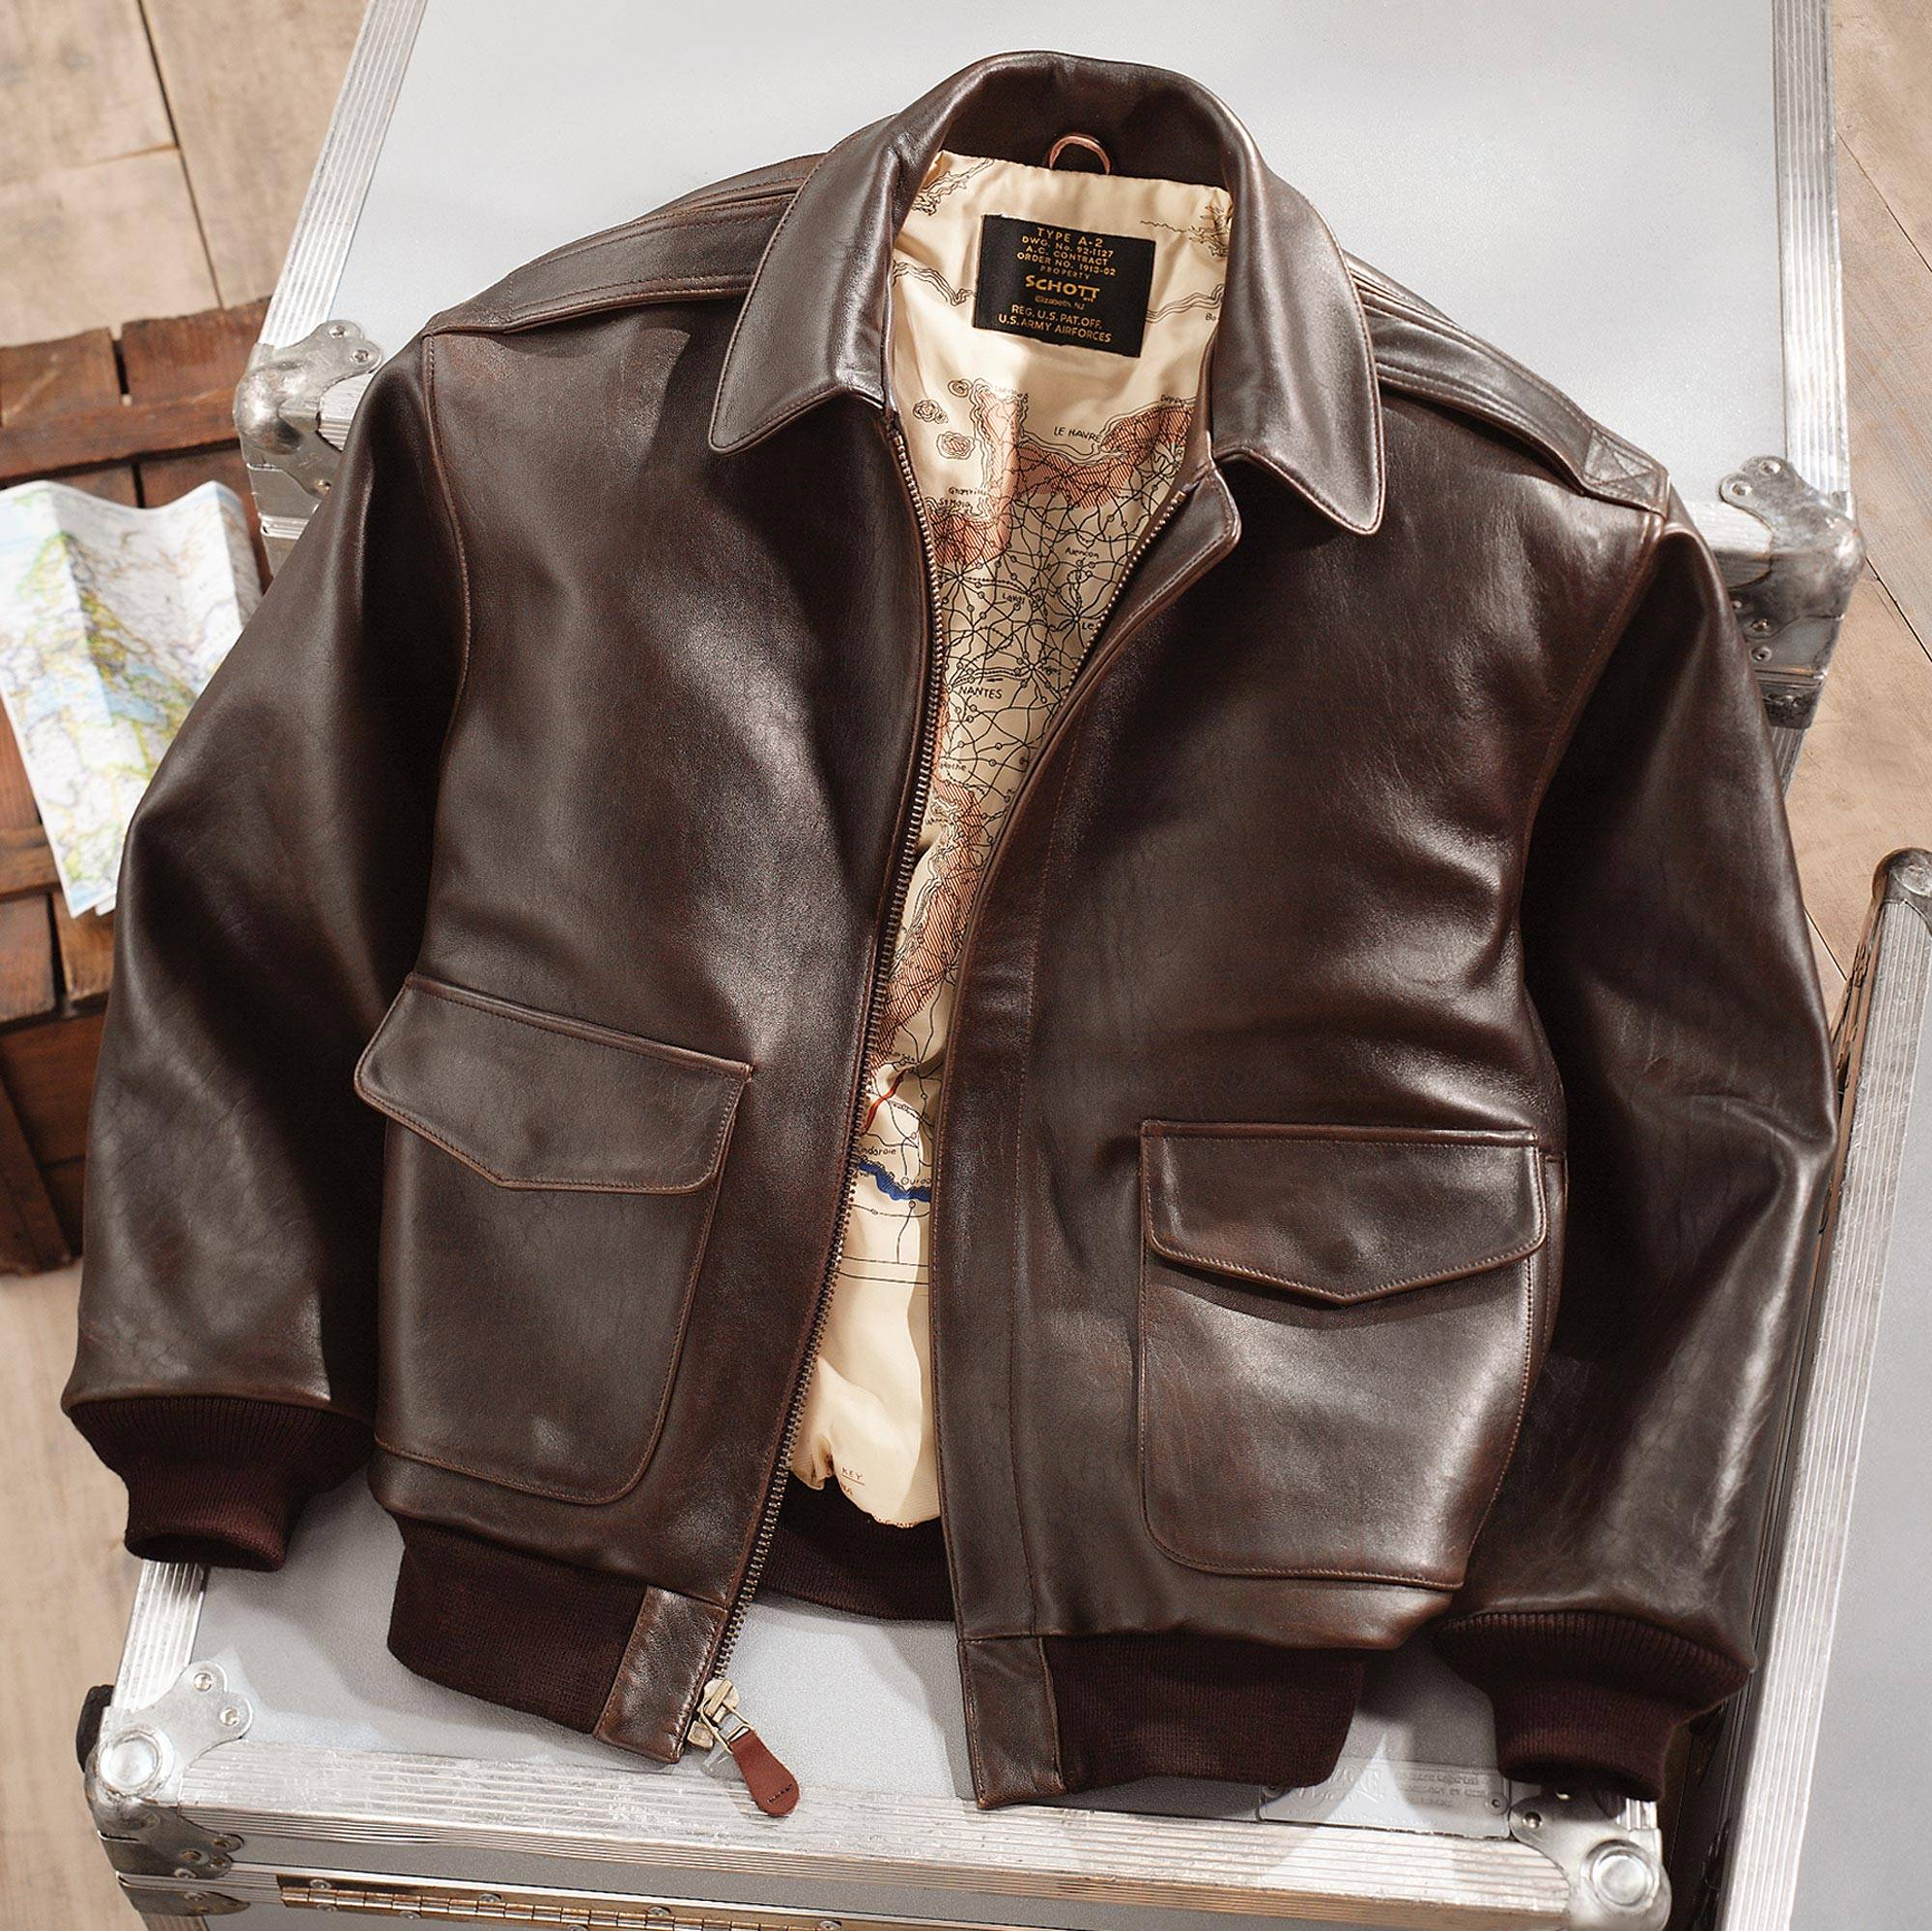 0aebbdd090 Leather A-2 Flight Jacket, 'Road to Victory'